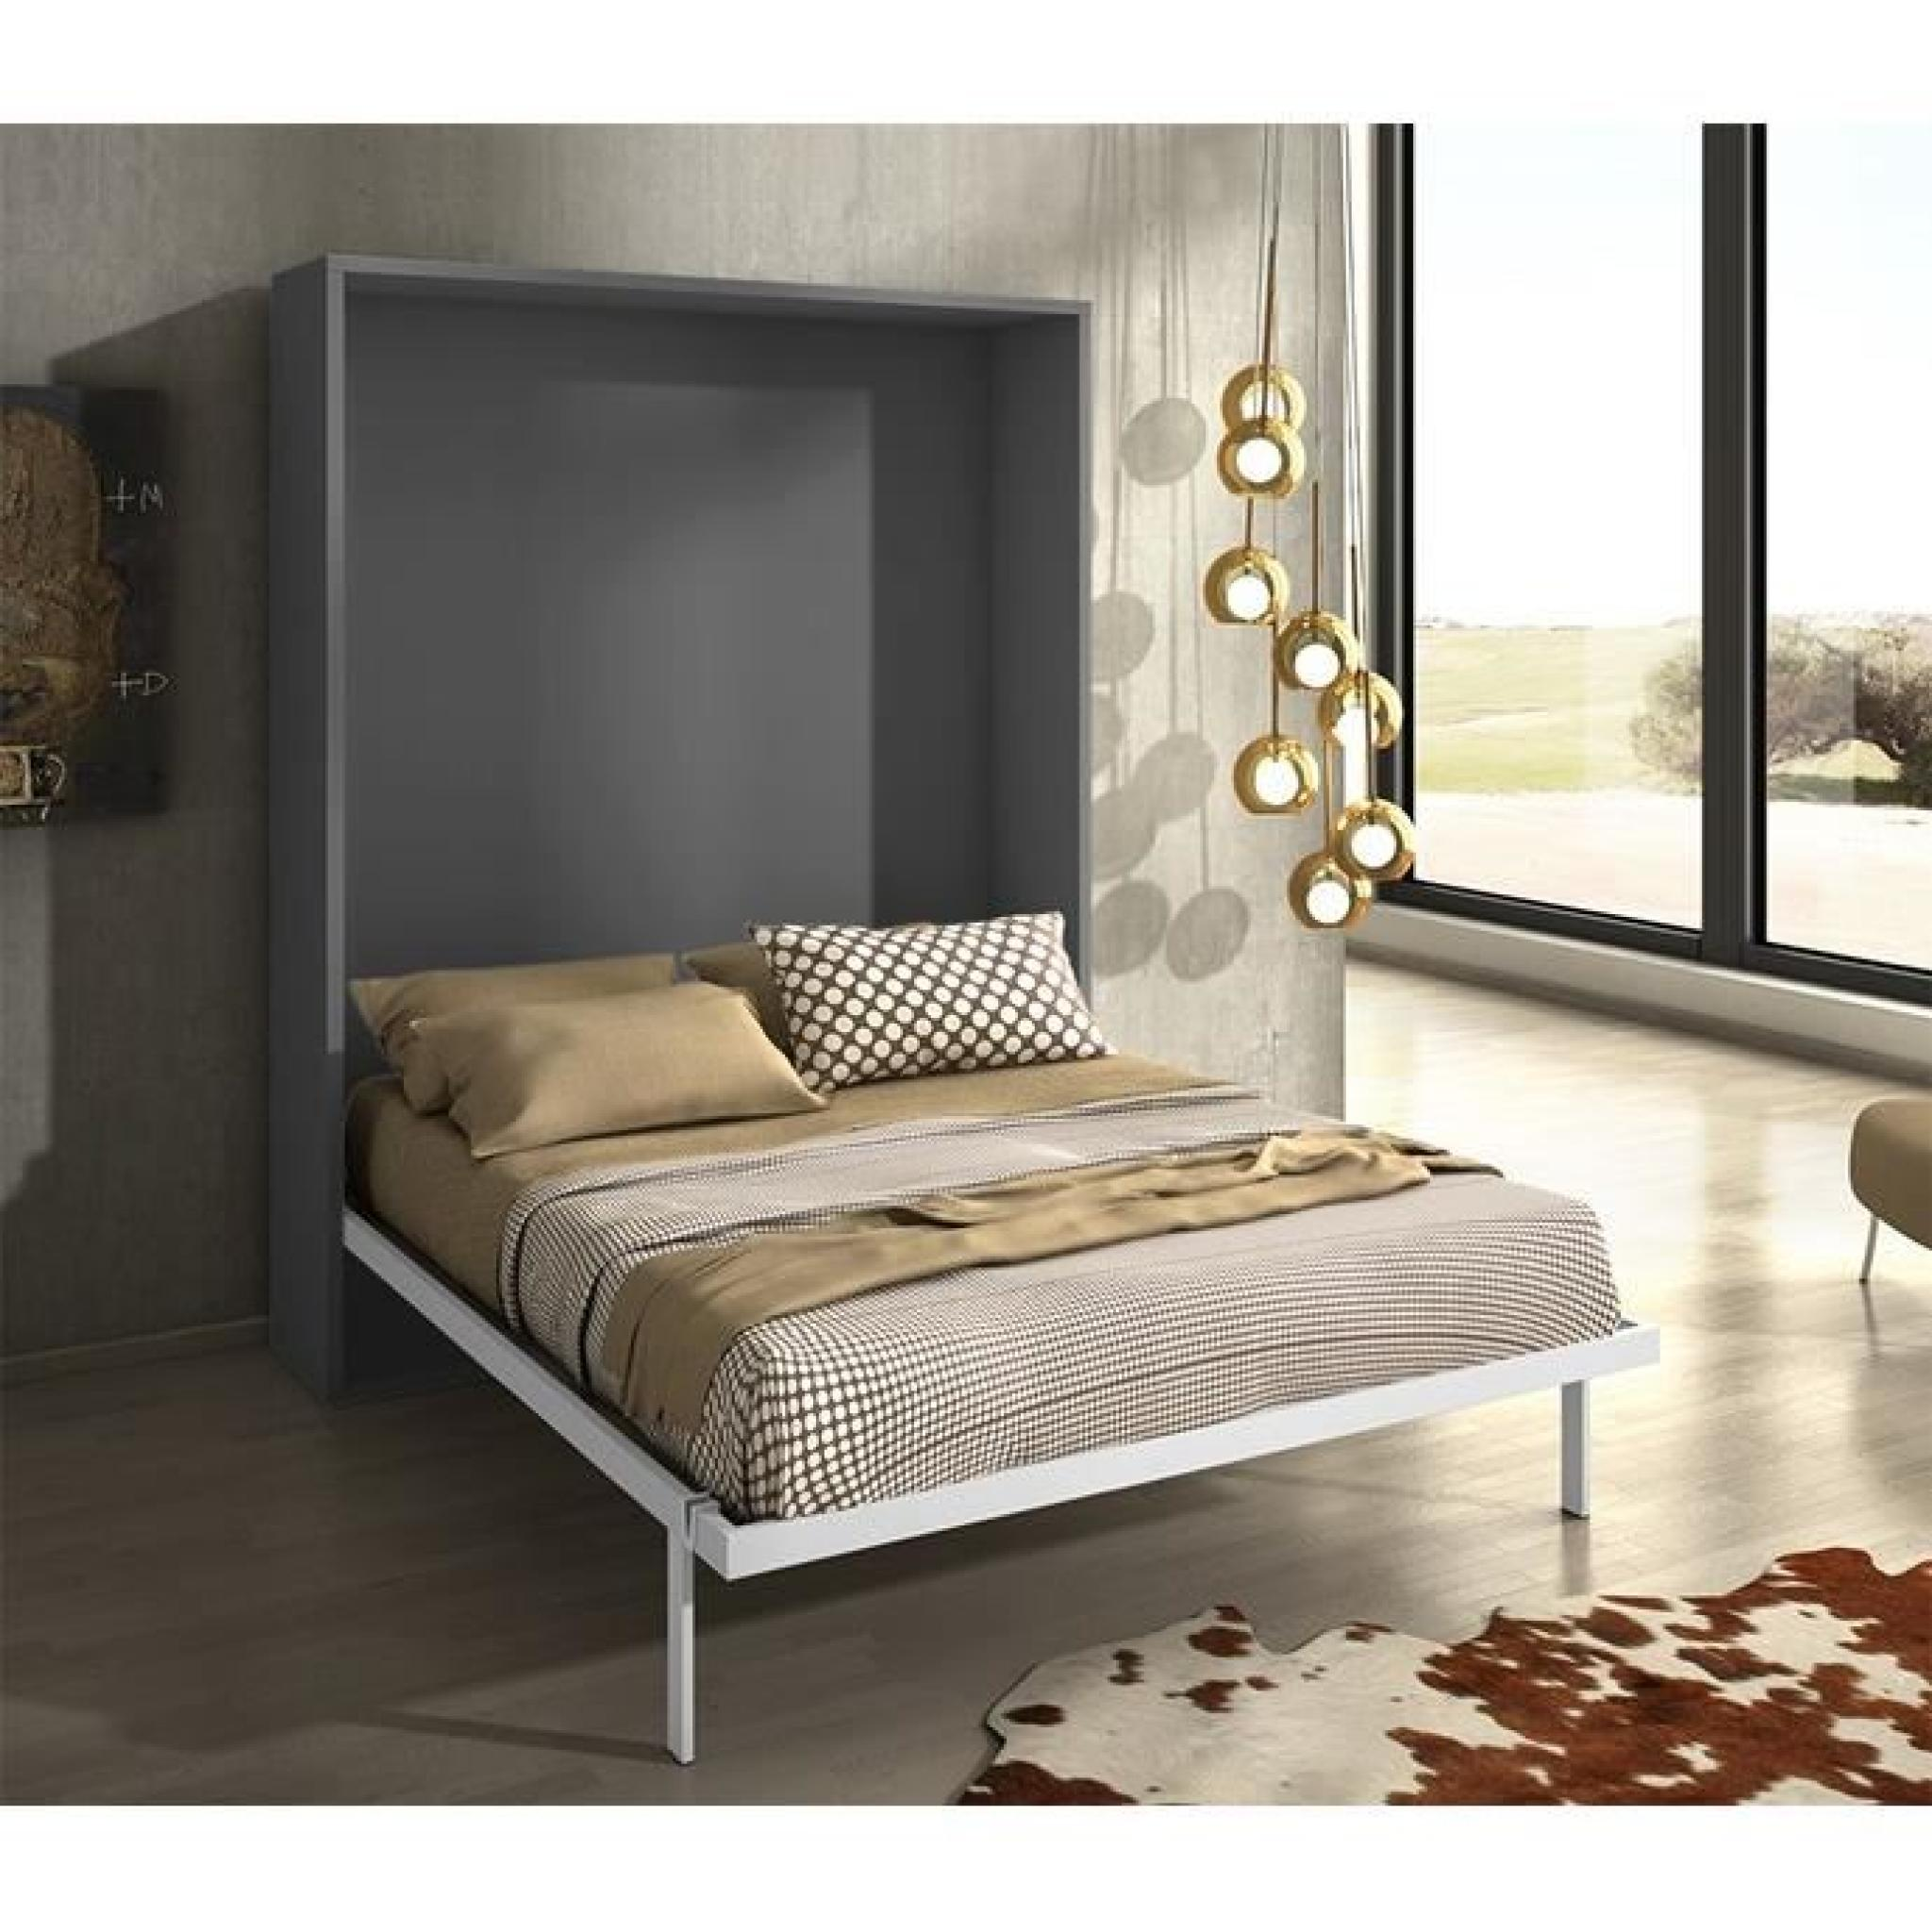 armoire lit escamotable joy gris mat 160x200 achat vente lit escamotable pas cher couleur et. Black Bedroom Furniture Sets. Home Design Ideas